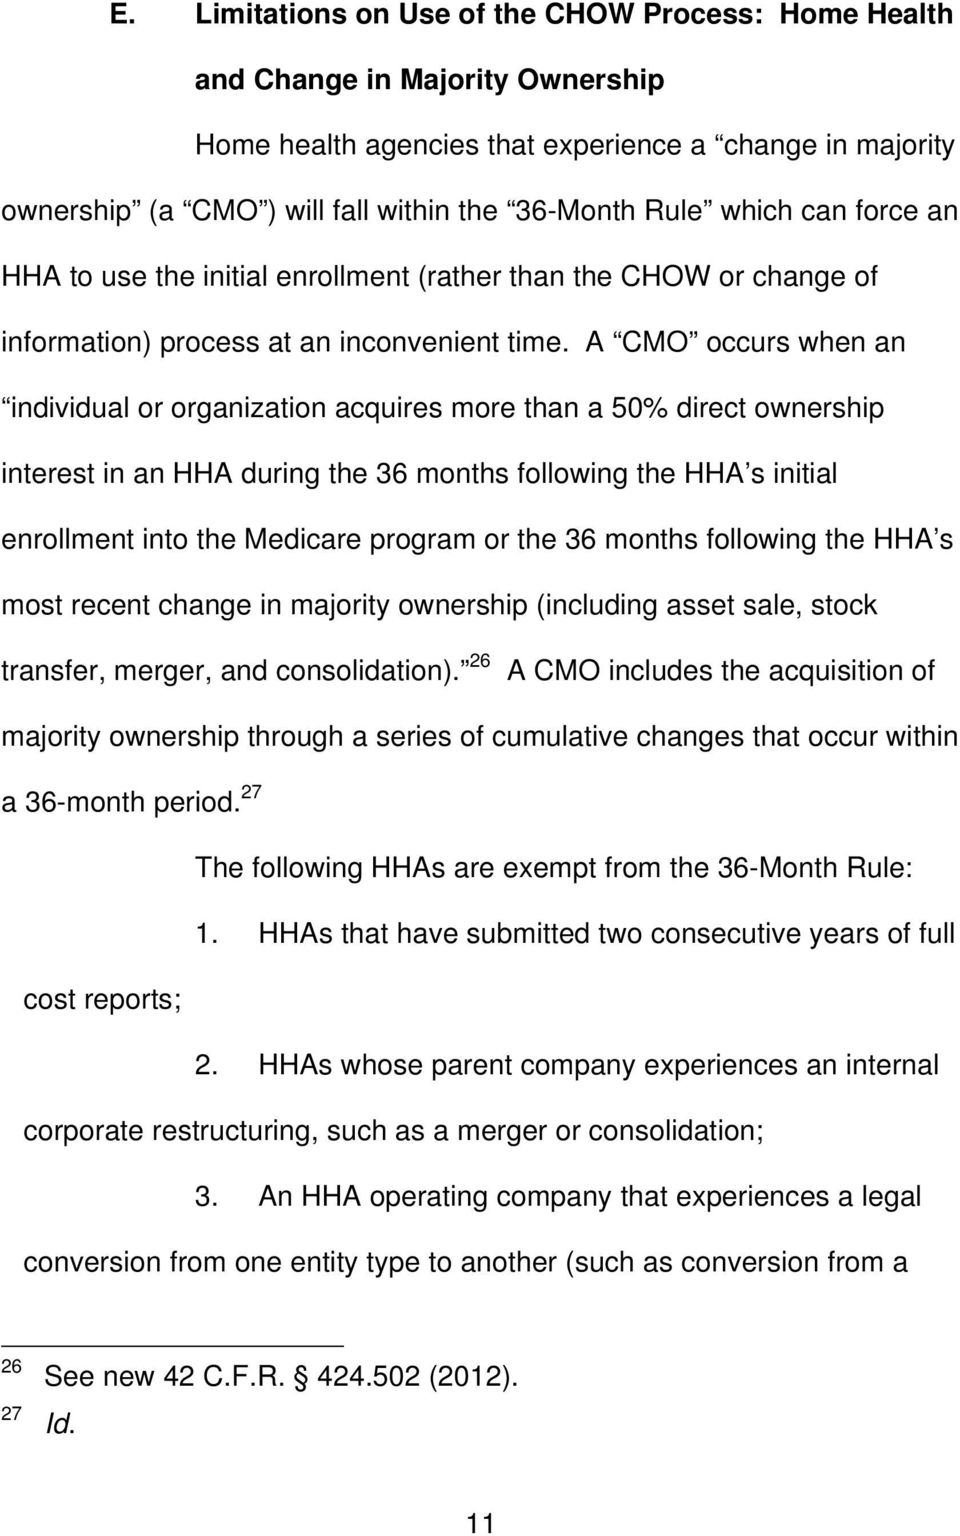 A CMO occurs when an individual or organization acquires more than a 50% direct ownership interest in an HHA during the 36 months following the HHA s initial enrollment into the Medicare program or